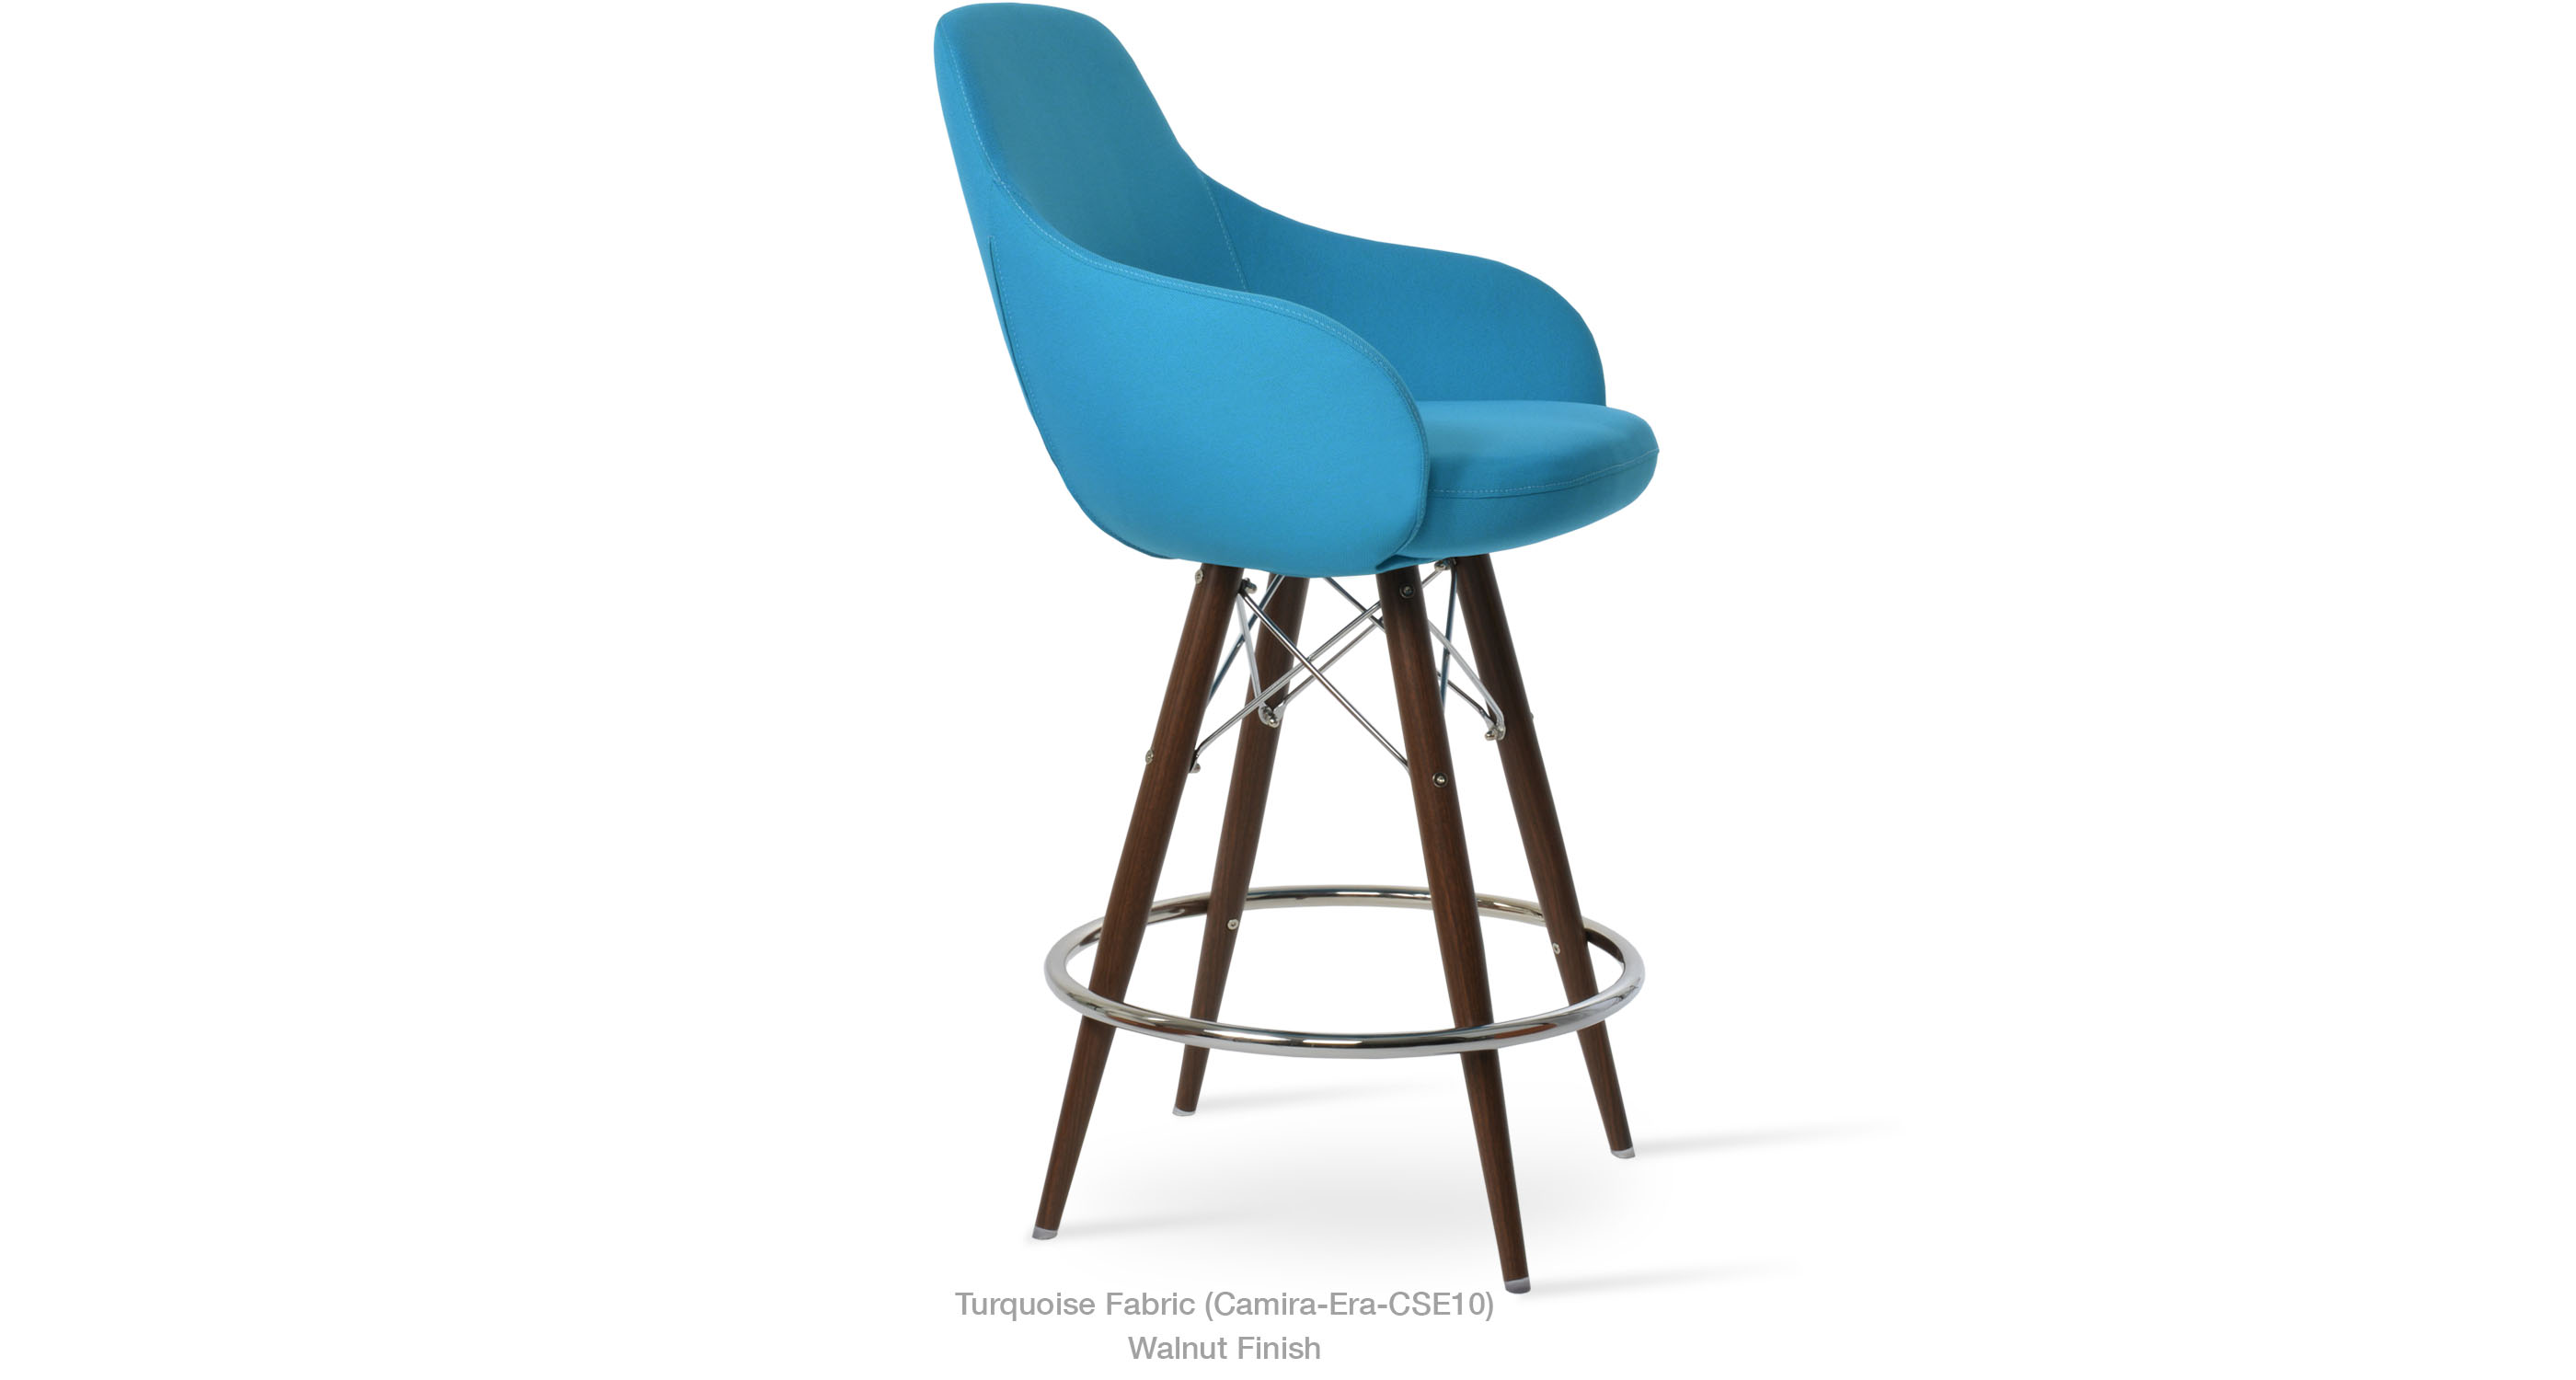 12 11 20 Gazel Arm Mw Stool Turquoise Fabric Walnut